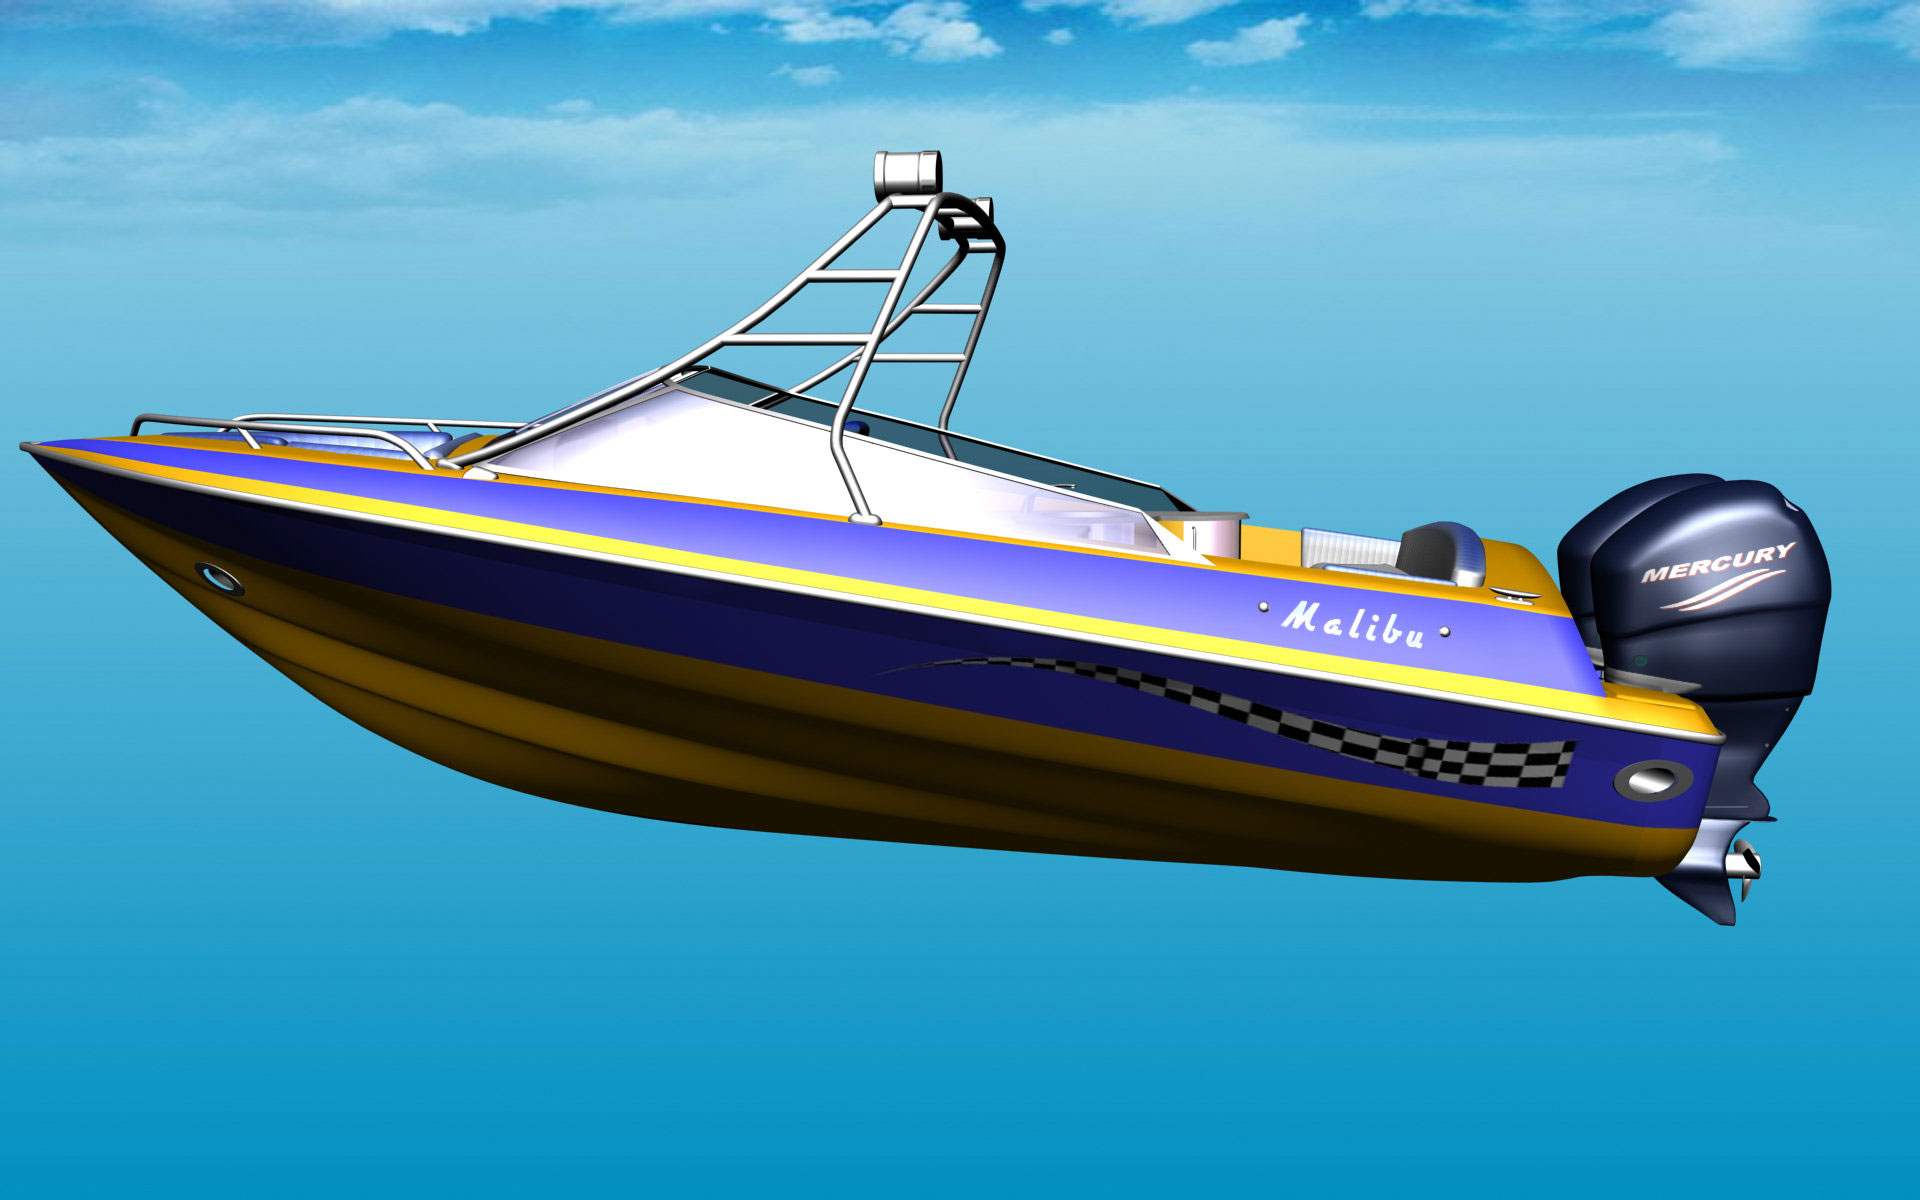 Malibu 32 Motor Boat for FSX - FSX Boats & Watercraft